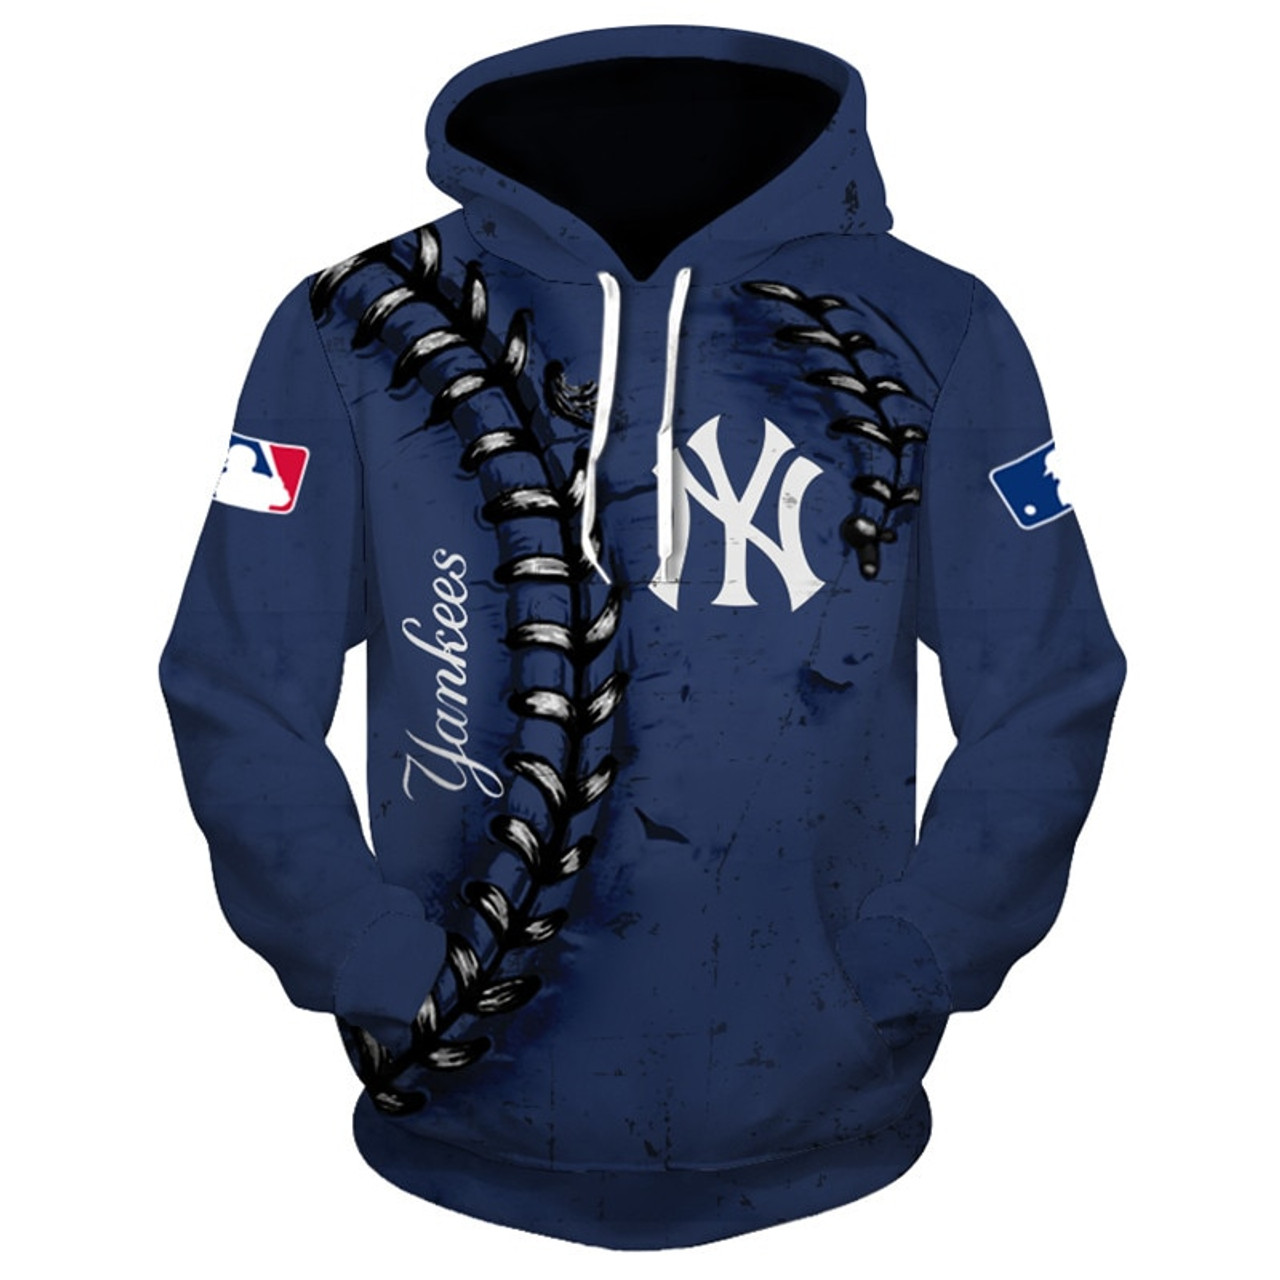 sale retailer 4f03f 42fc3 **(OFFICIALLY-LICENSED-M.L.B.  NEW-YORK-YANKEES-TEAM-HOODIES/NICE-CUSTOM-DETAILED-3D-GRAPHIC-PRINTED/PREMIUM-ALL-OVER-DOUBLE-SIDED-PRINT/OFFICIAL-YANKE...